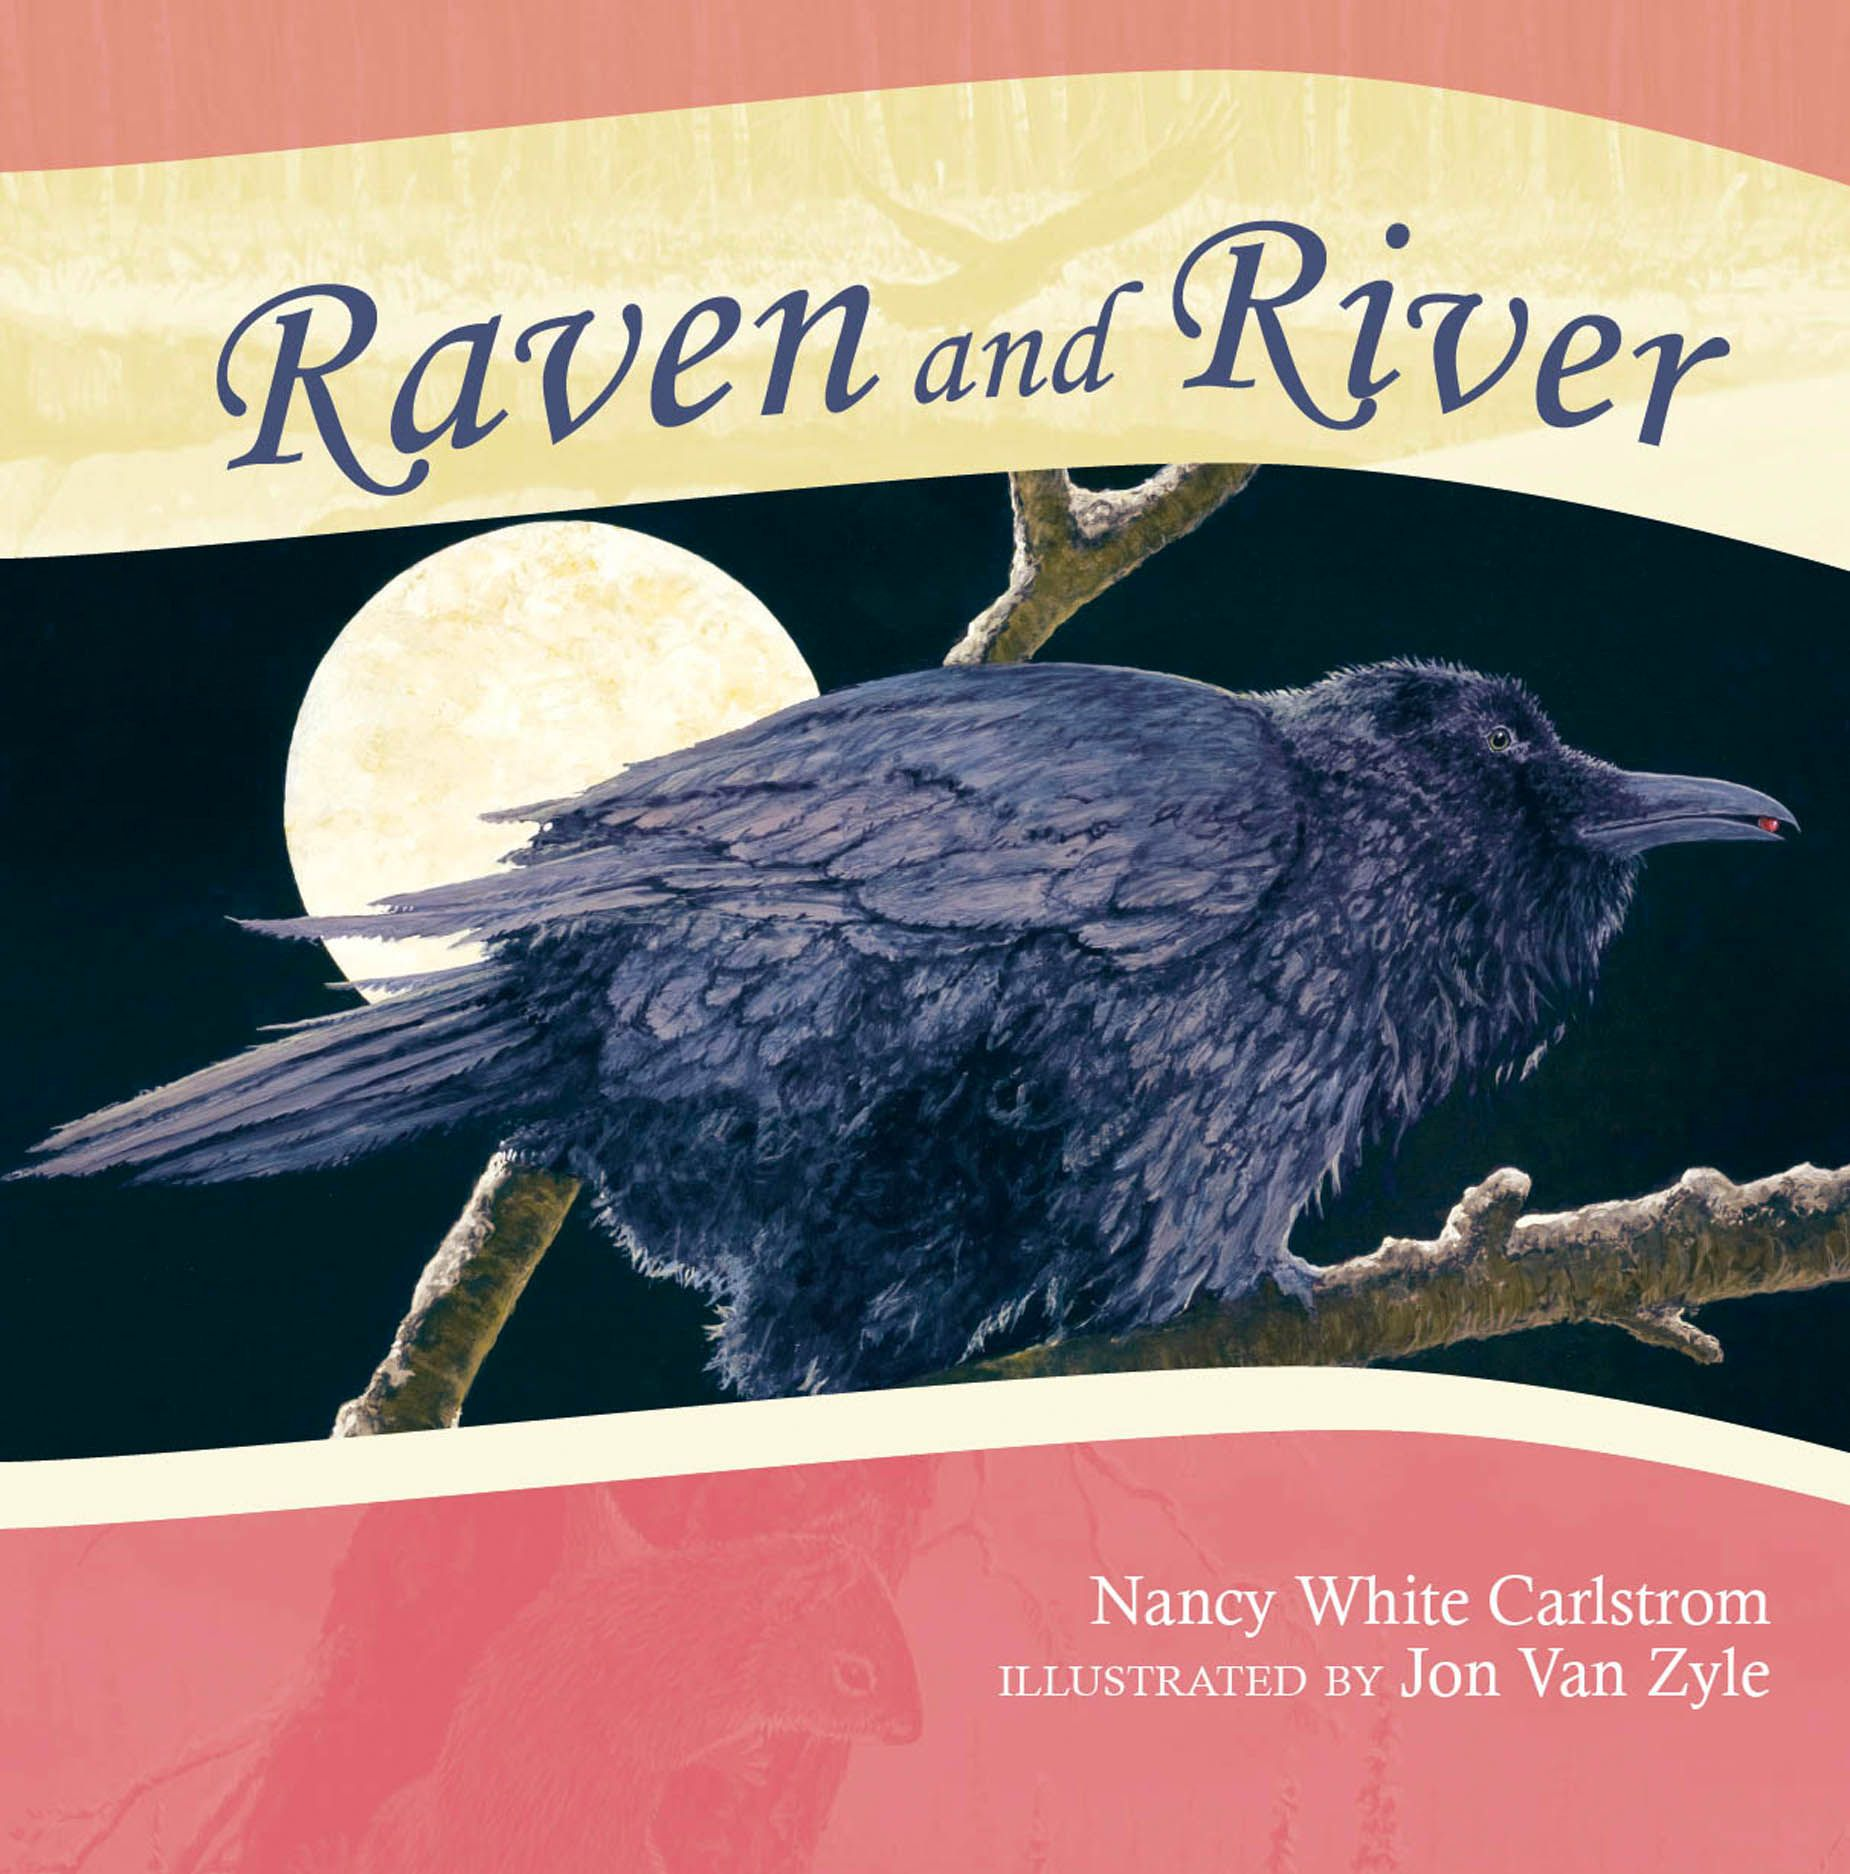 Raven and River